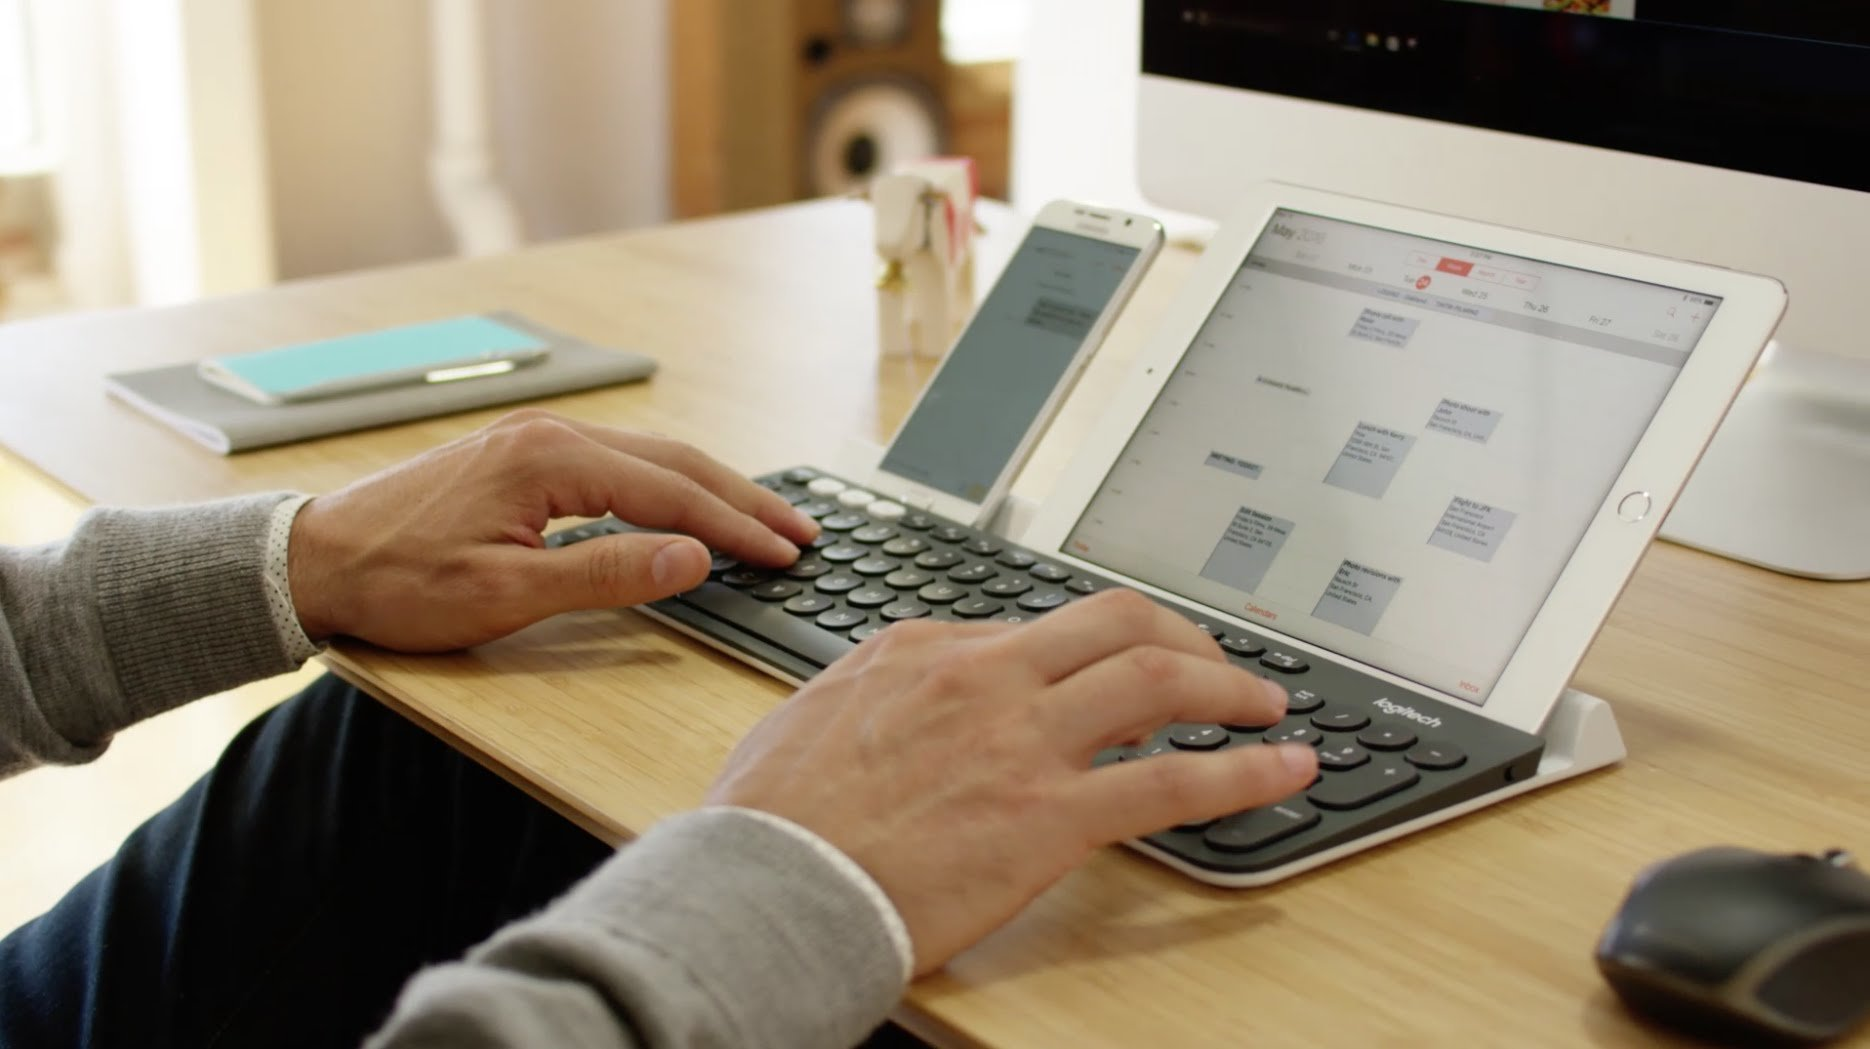 K780 MultiDevice Wireless Keyboard